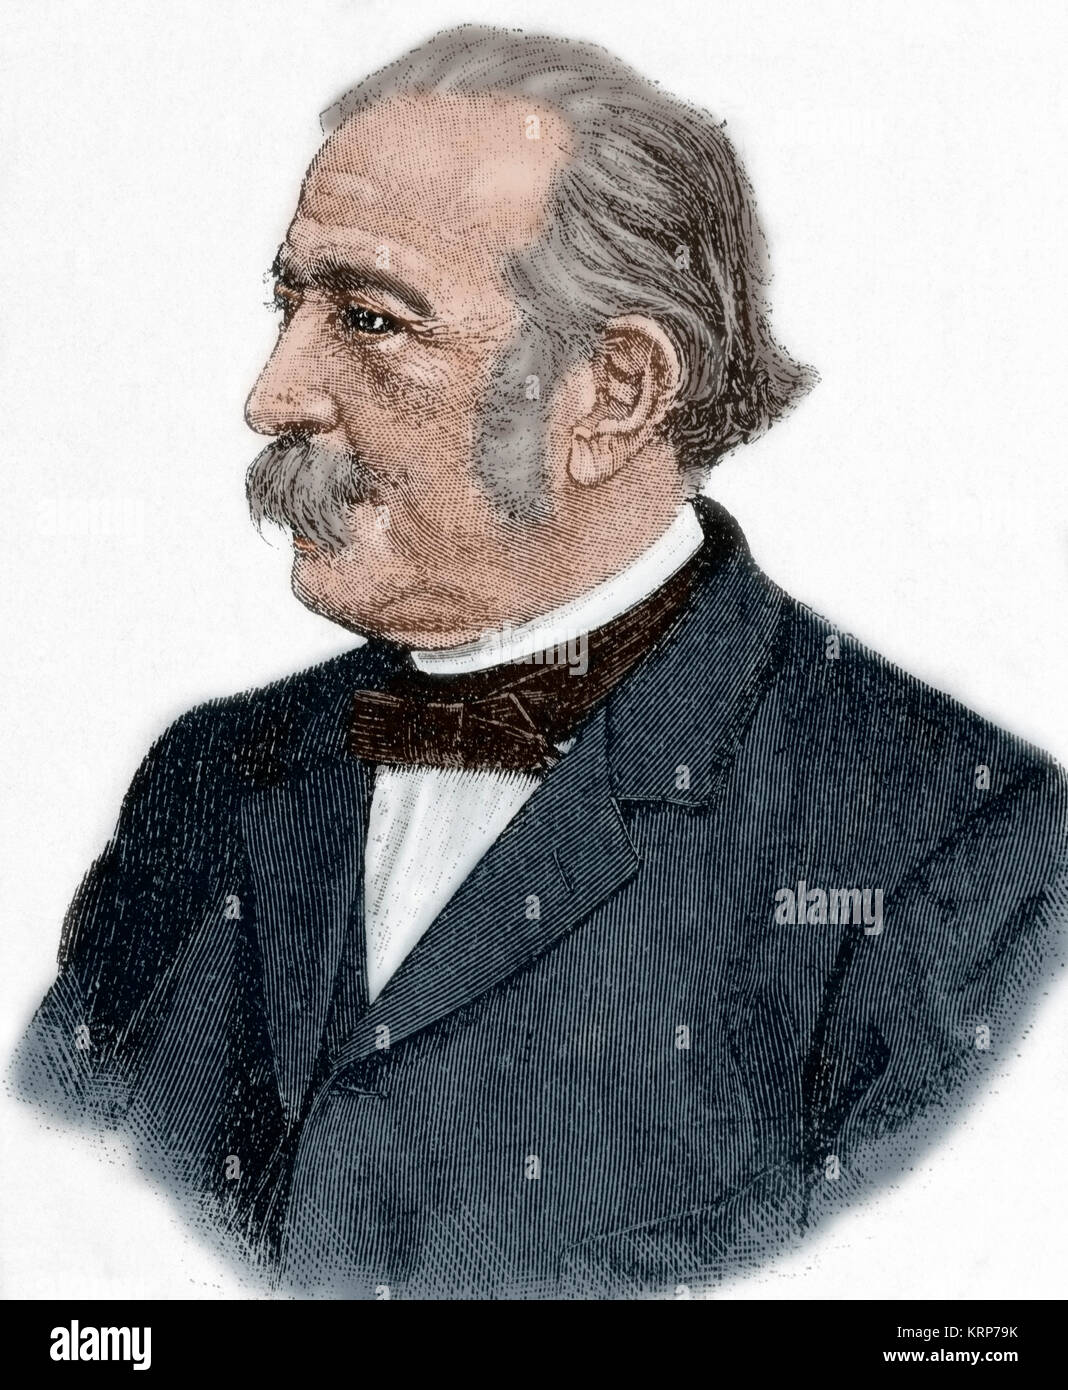 Theodor Fontane (1819-1898). German writer. Portrait. Engraving. Colored. Stock Photo